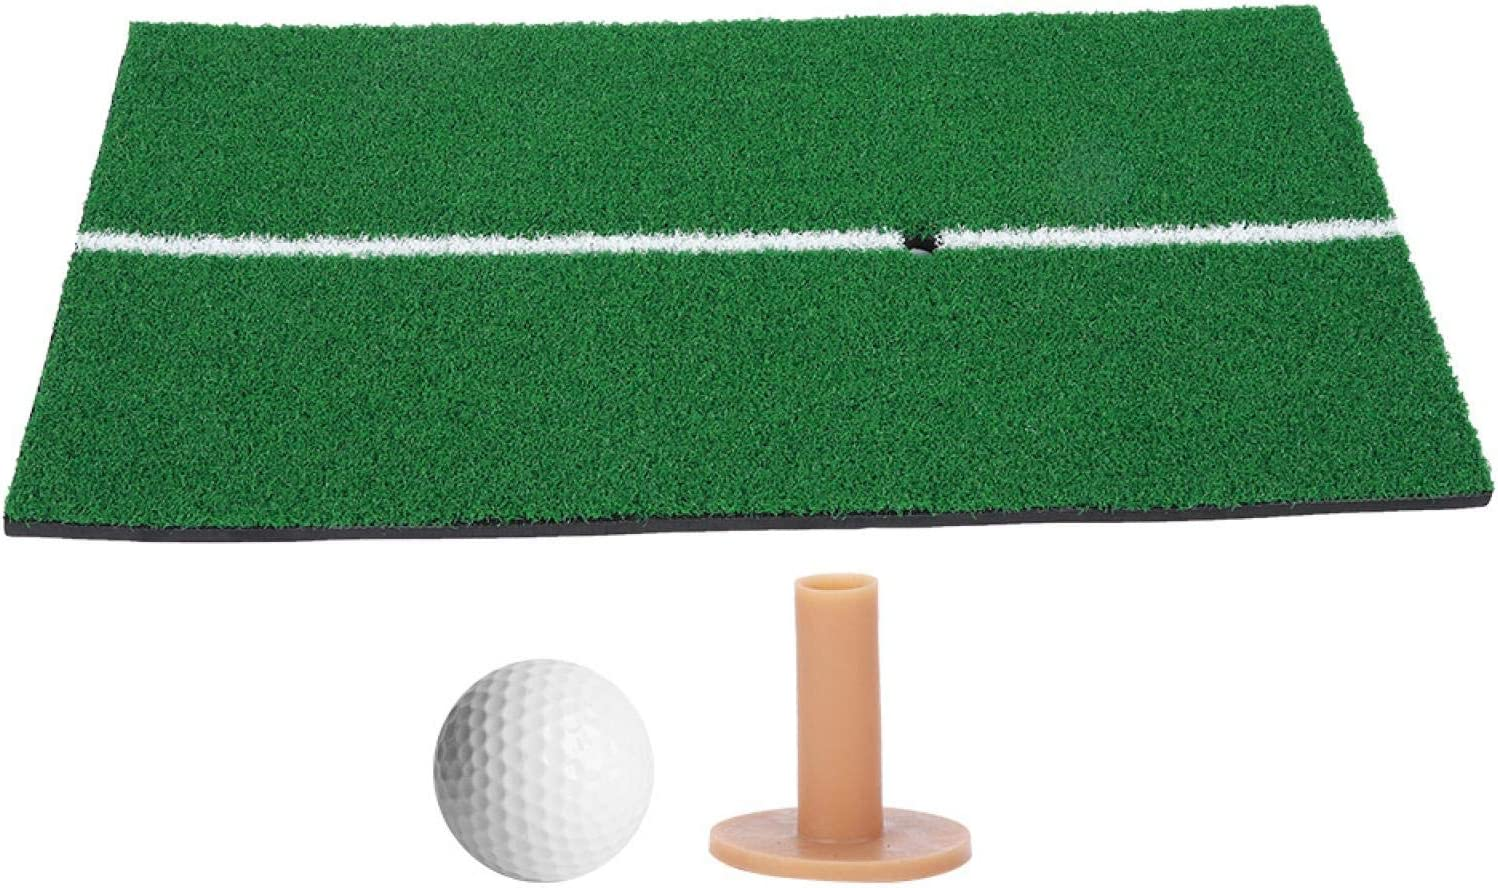 SALUTUYA Exercise Hitting Pad Ranking TOP4 Golf Mat Wear Great interest Resistant fo Durable